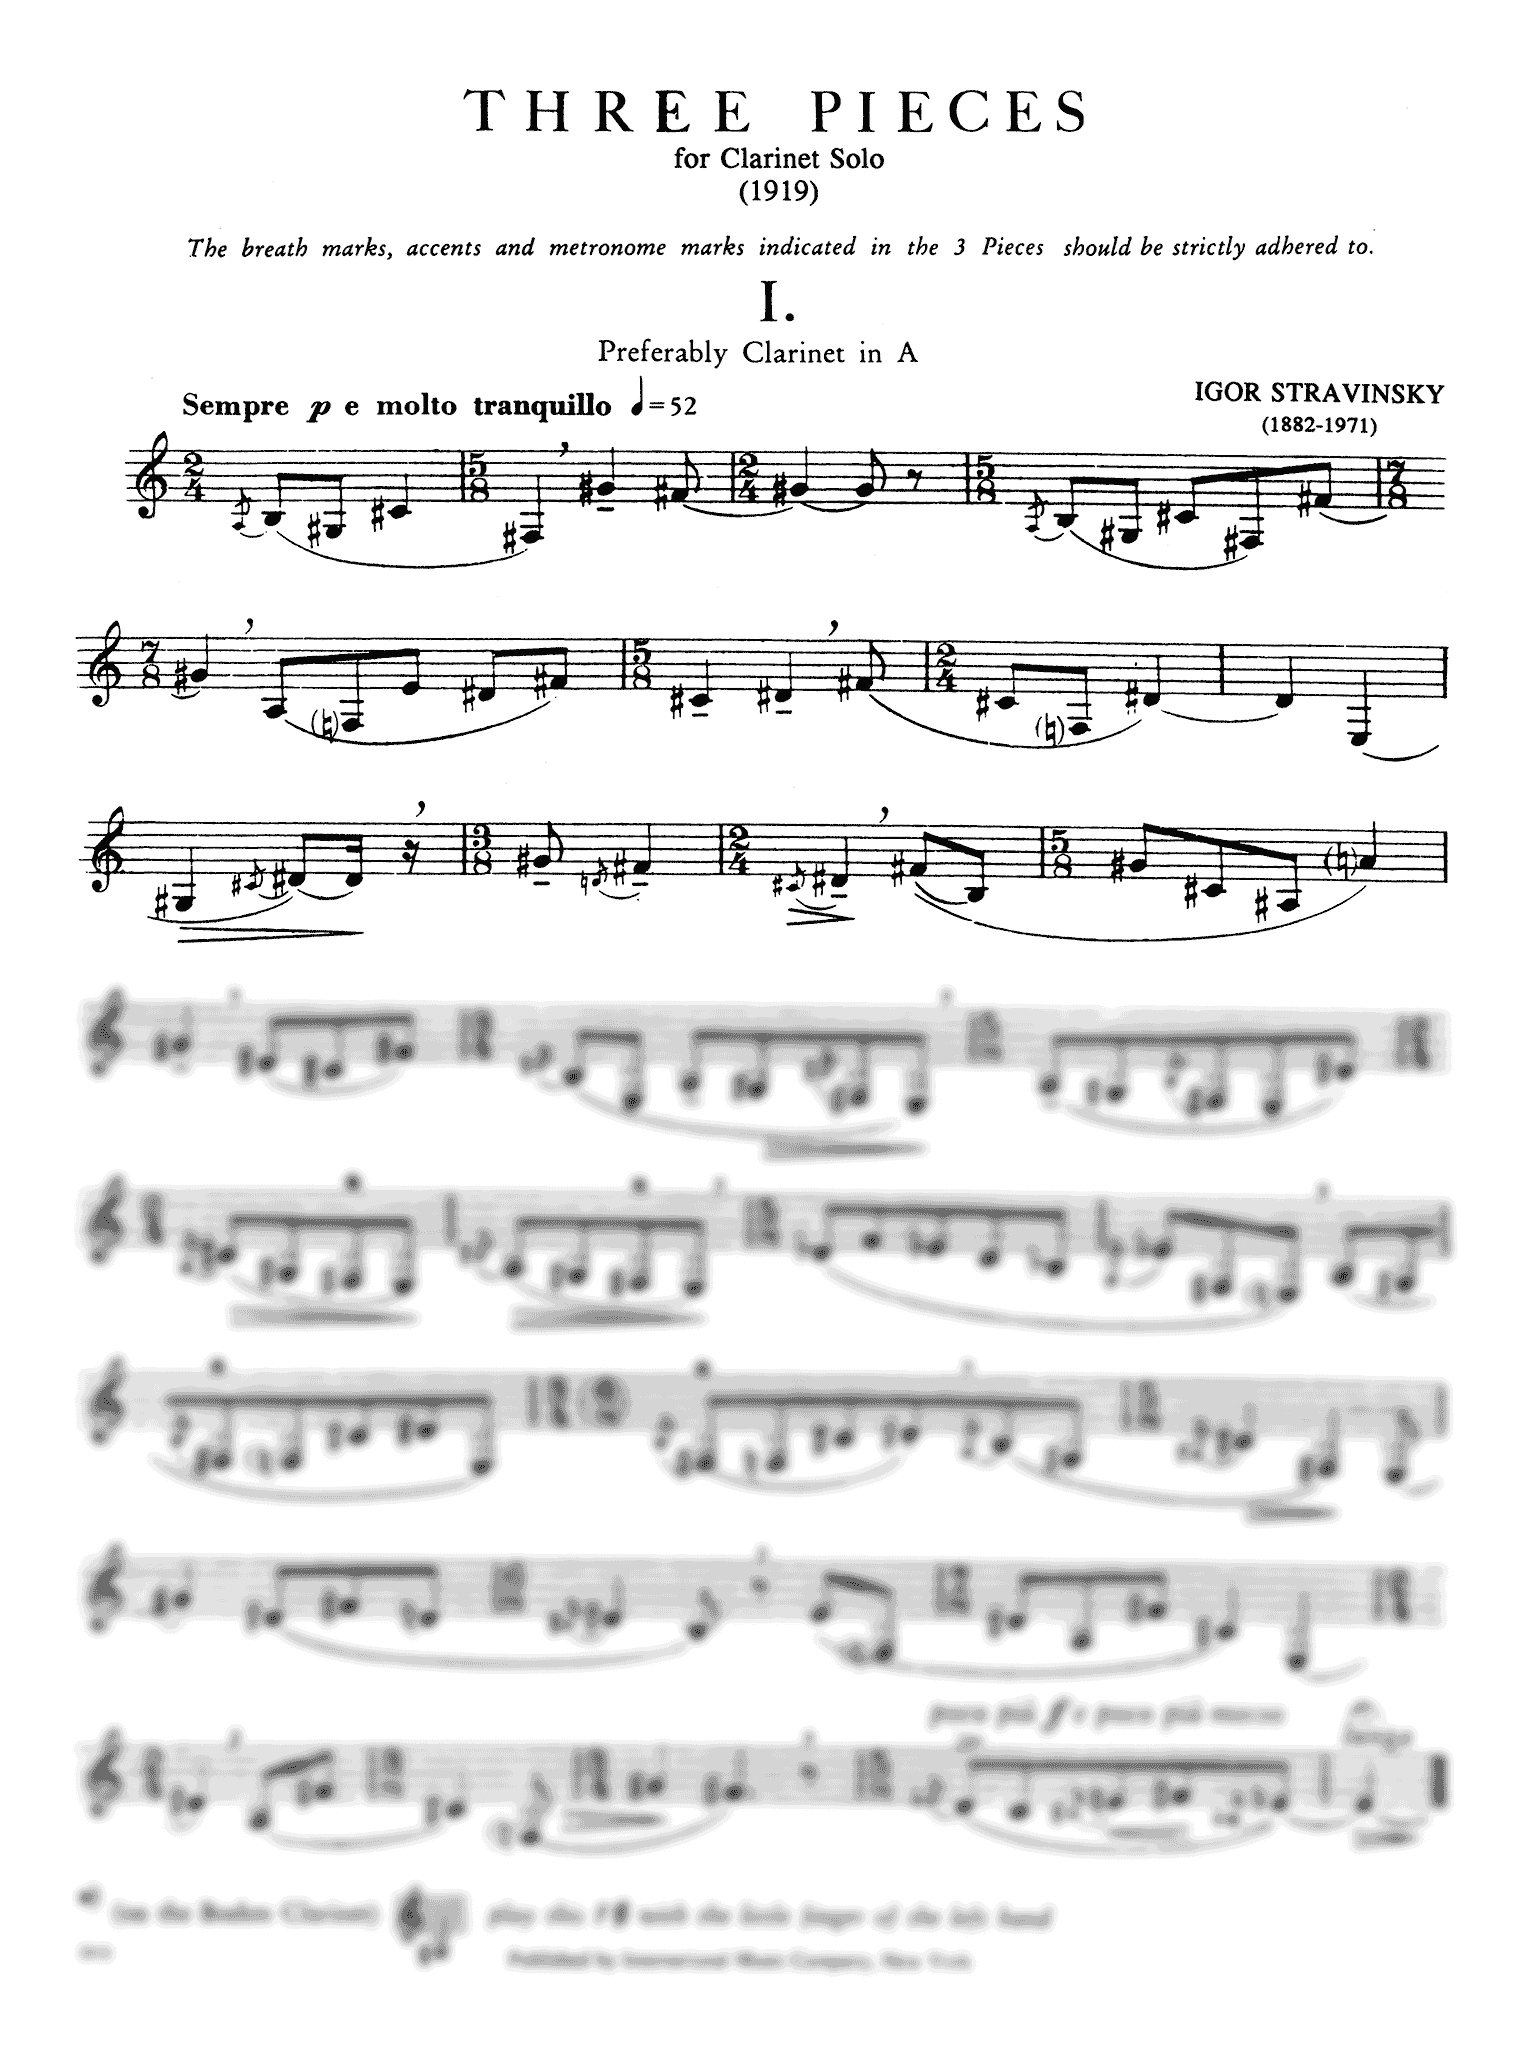 Three Pieces for Clarinet Solo - Movement 1